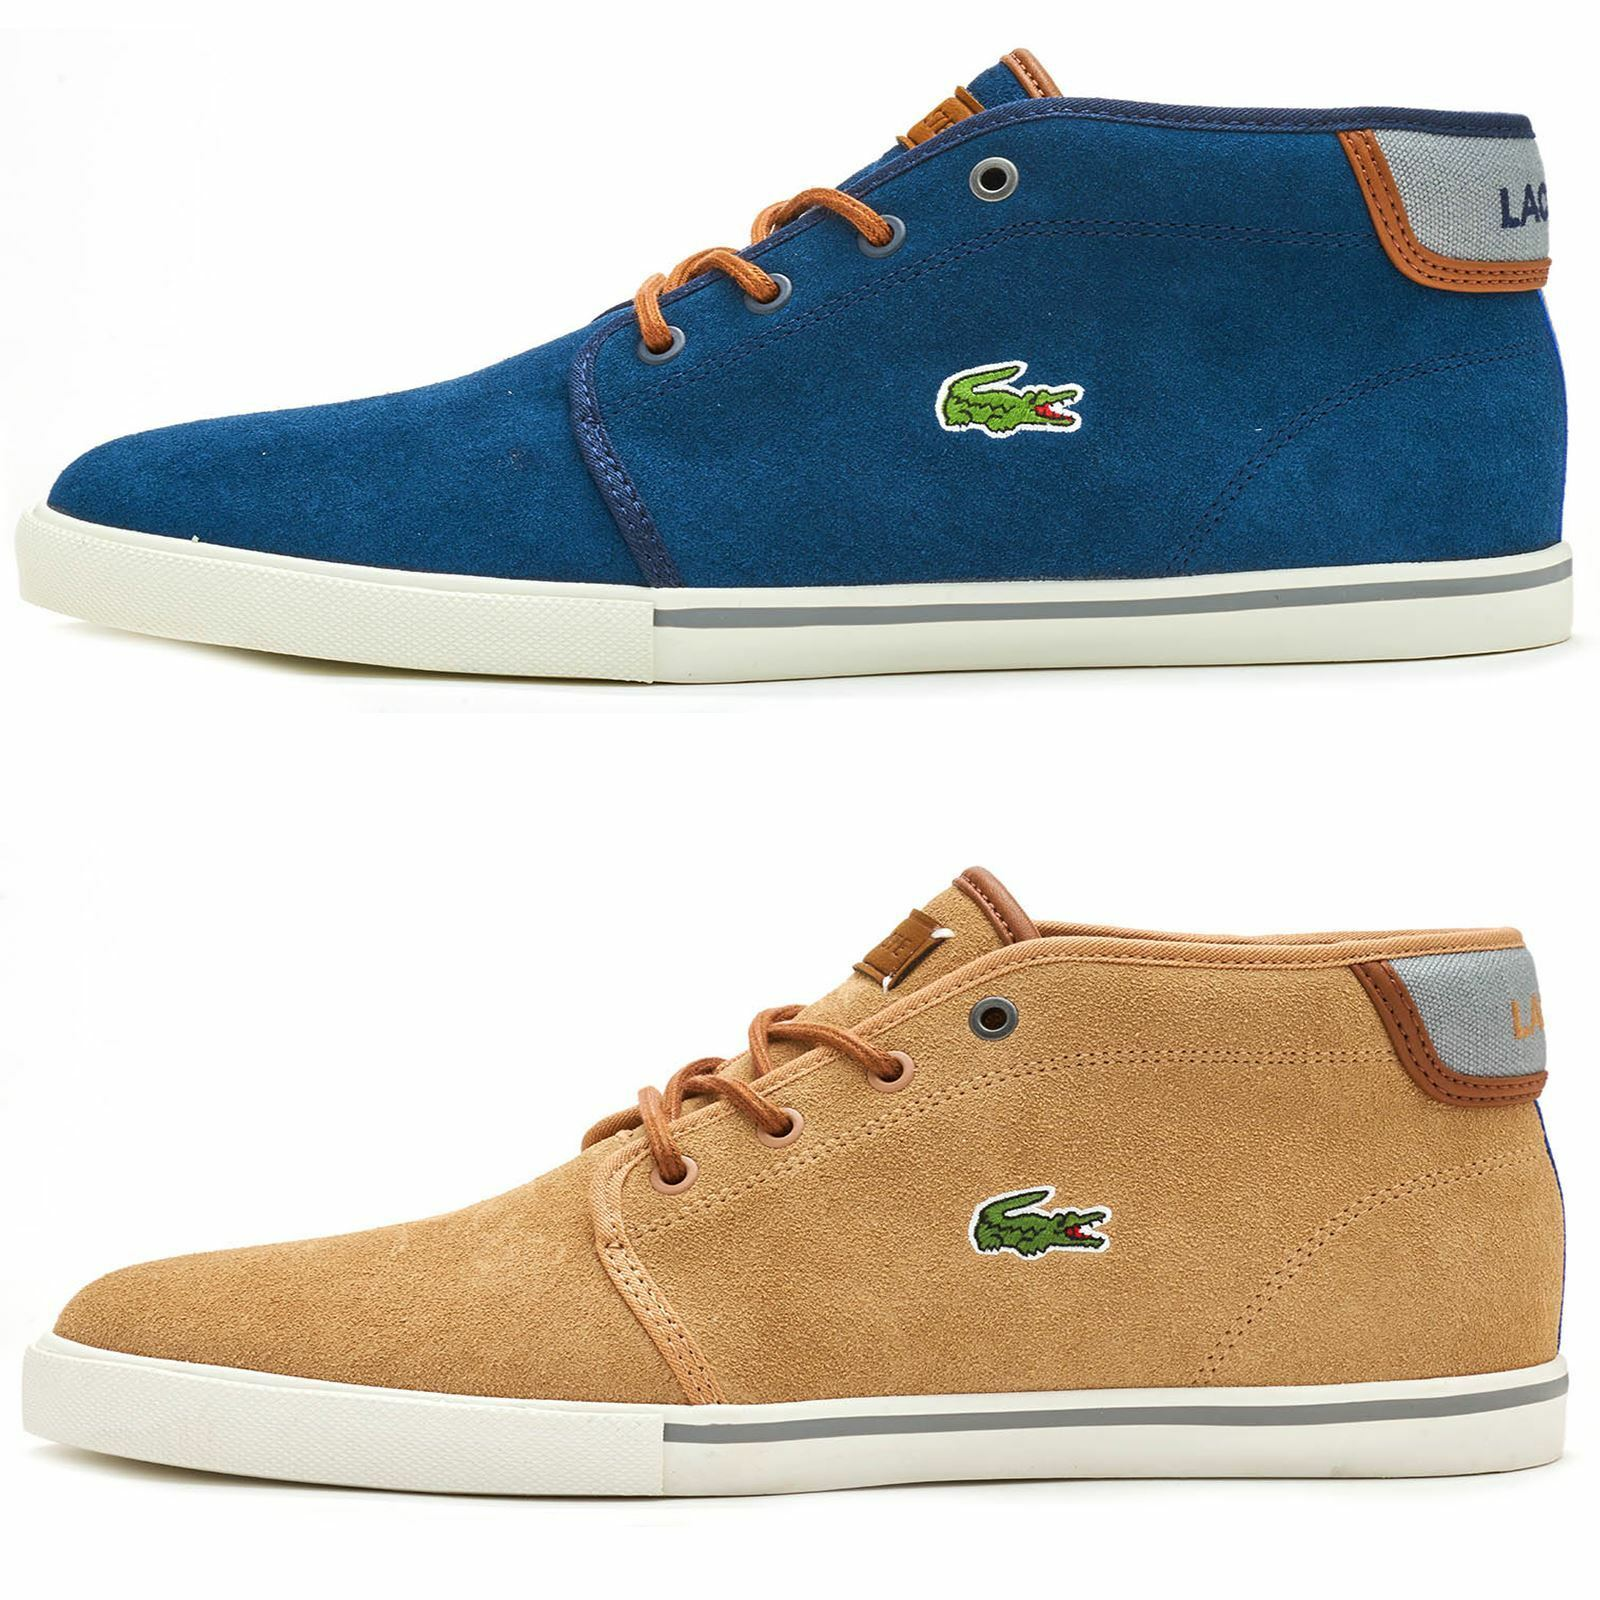 Lacoste Ampthill Chukka Ankle Suede Winter Boots High Top Trainers bluee & Brown